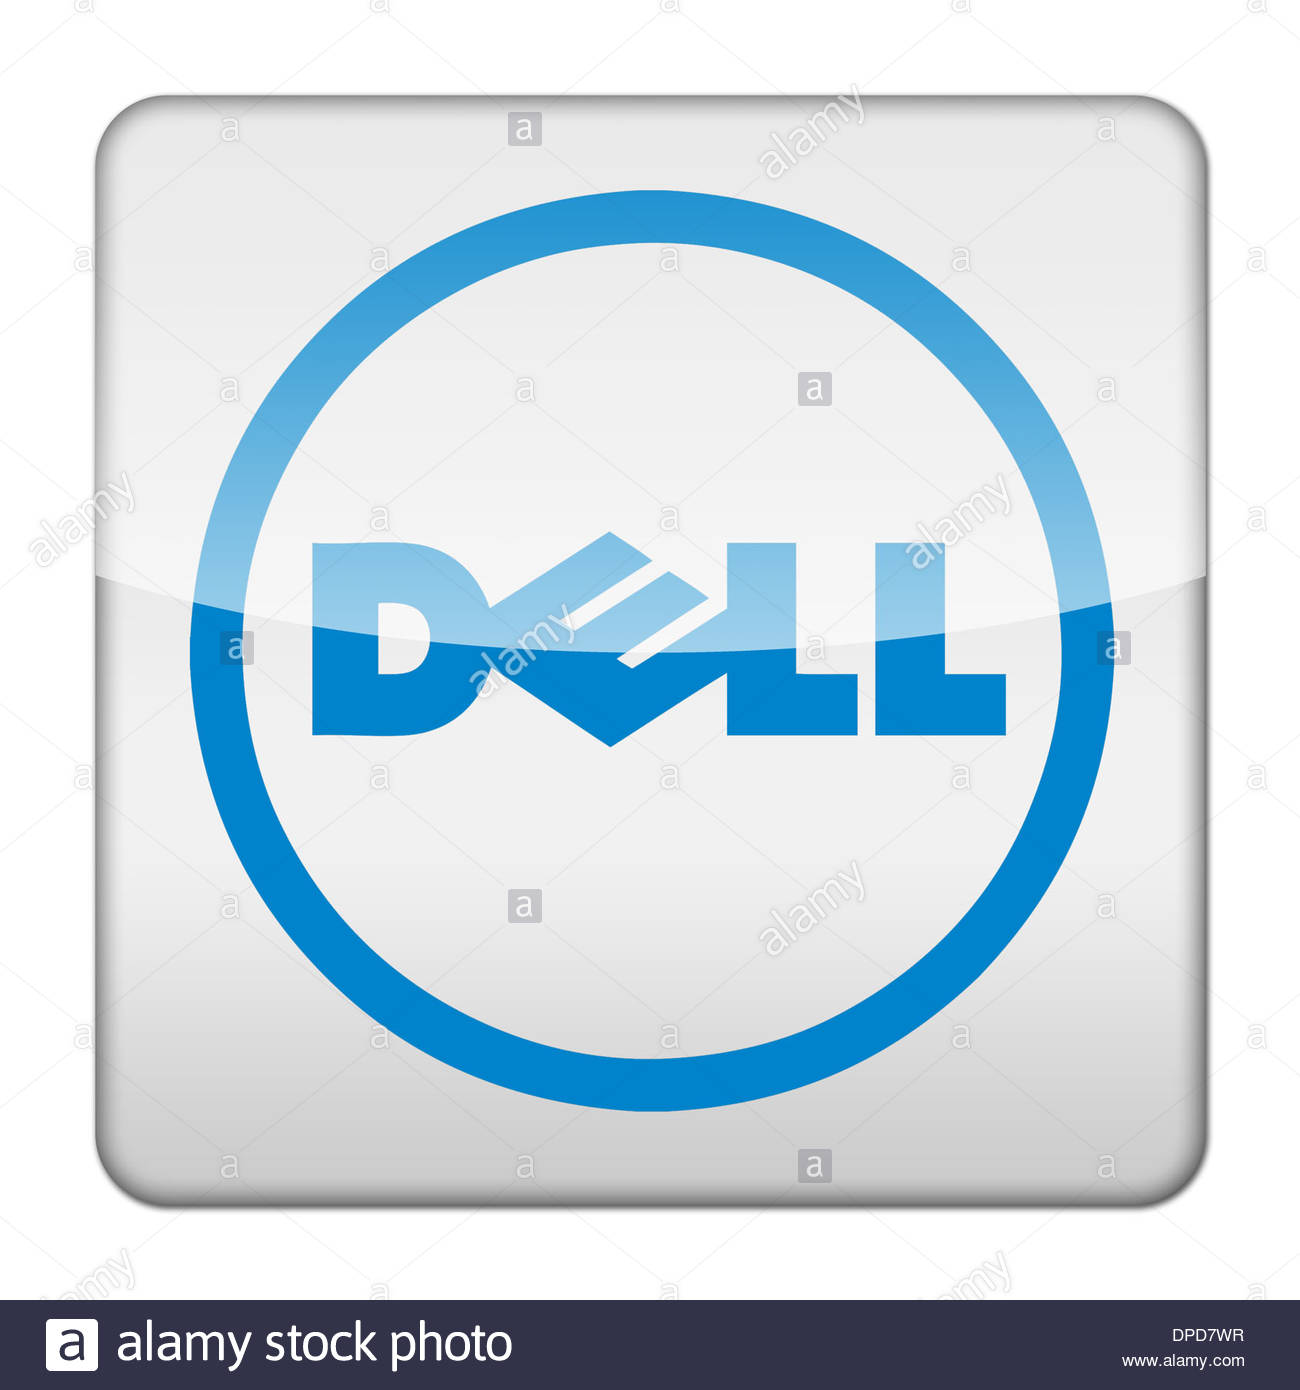 Dell computers logo icon app flag button stock photo 65445123 alamy dell computers logo icon app flag button biocorpaavc Images